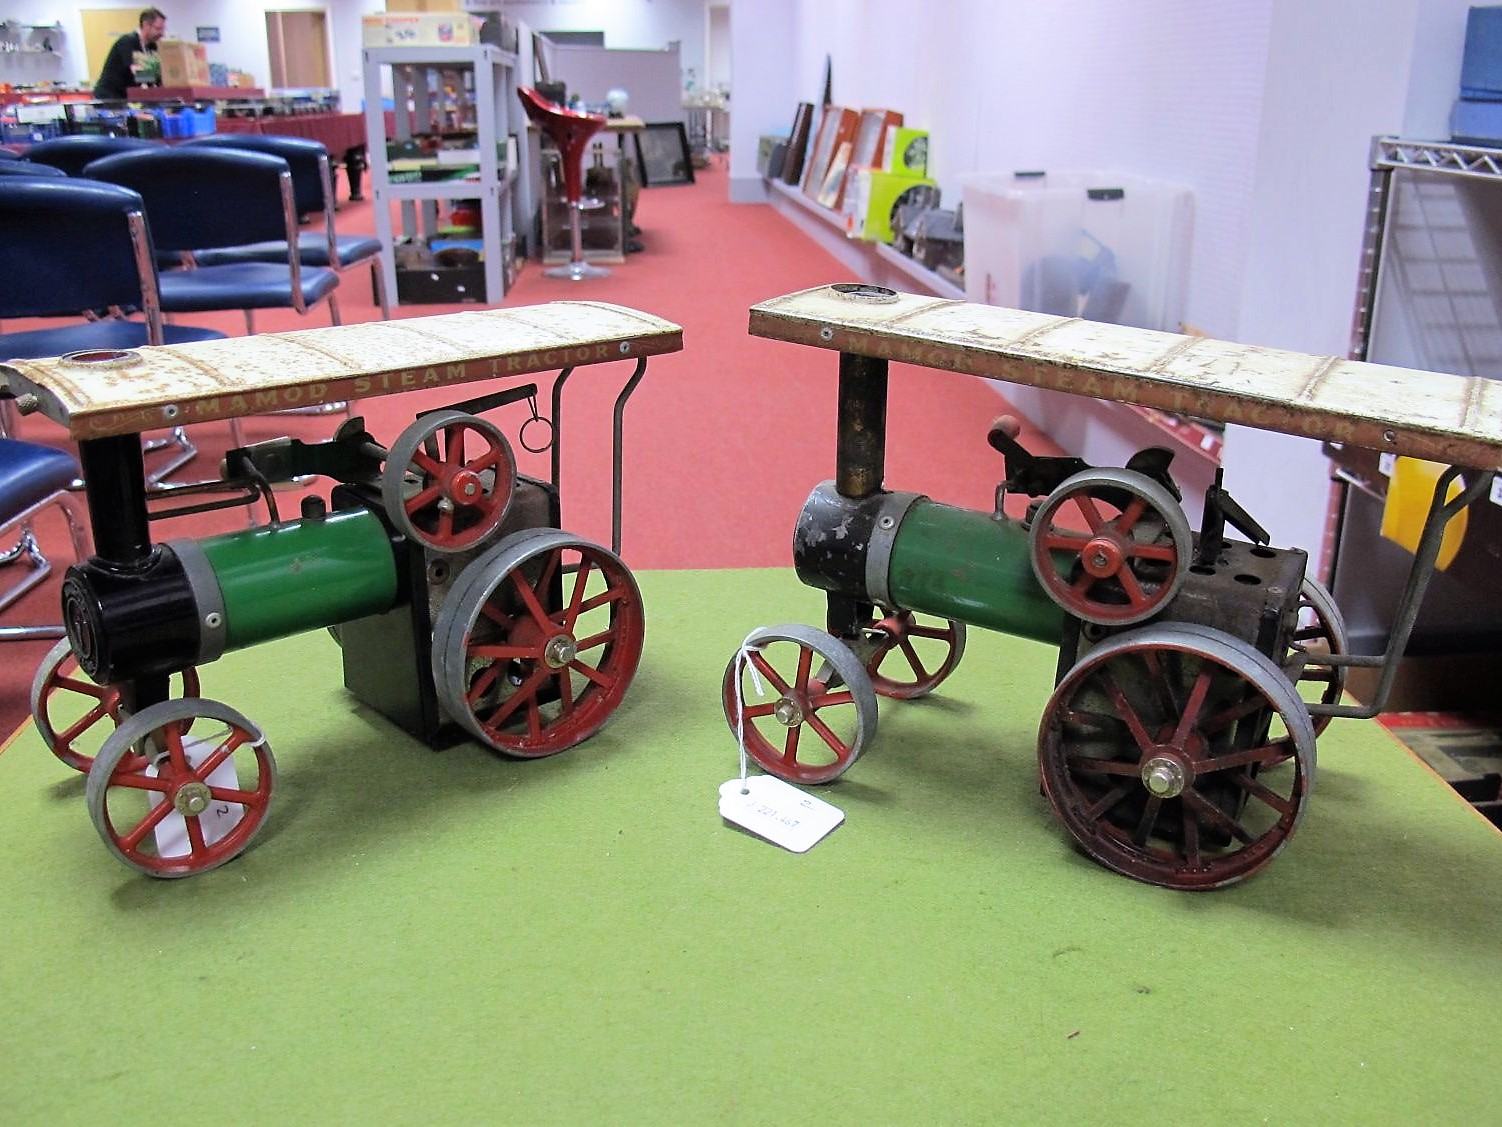 Lot 13 - A Pair of Mamod #TE1A Live Steam Model Traction Engines, both playworn, no burners or scuttles for